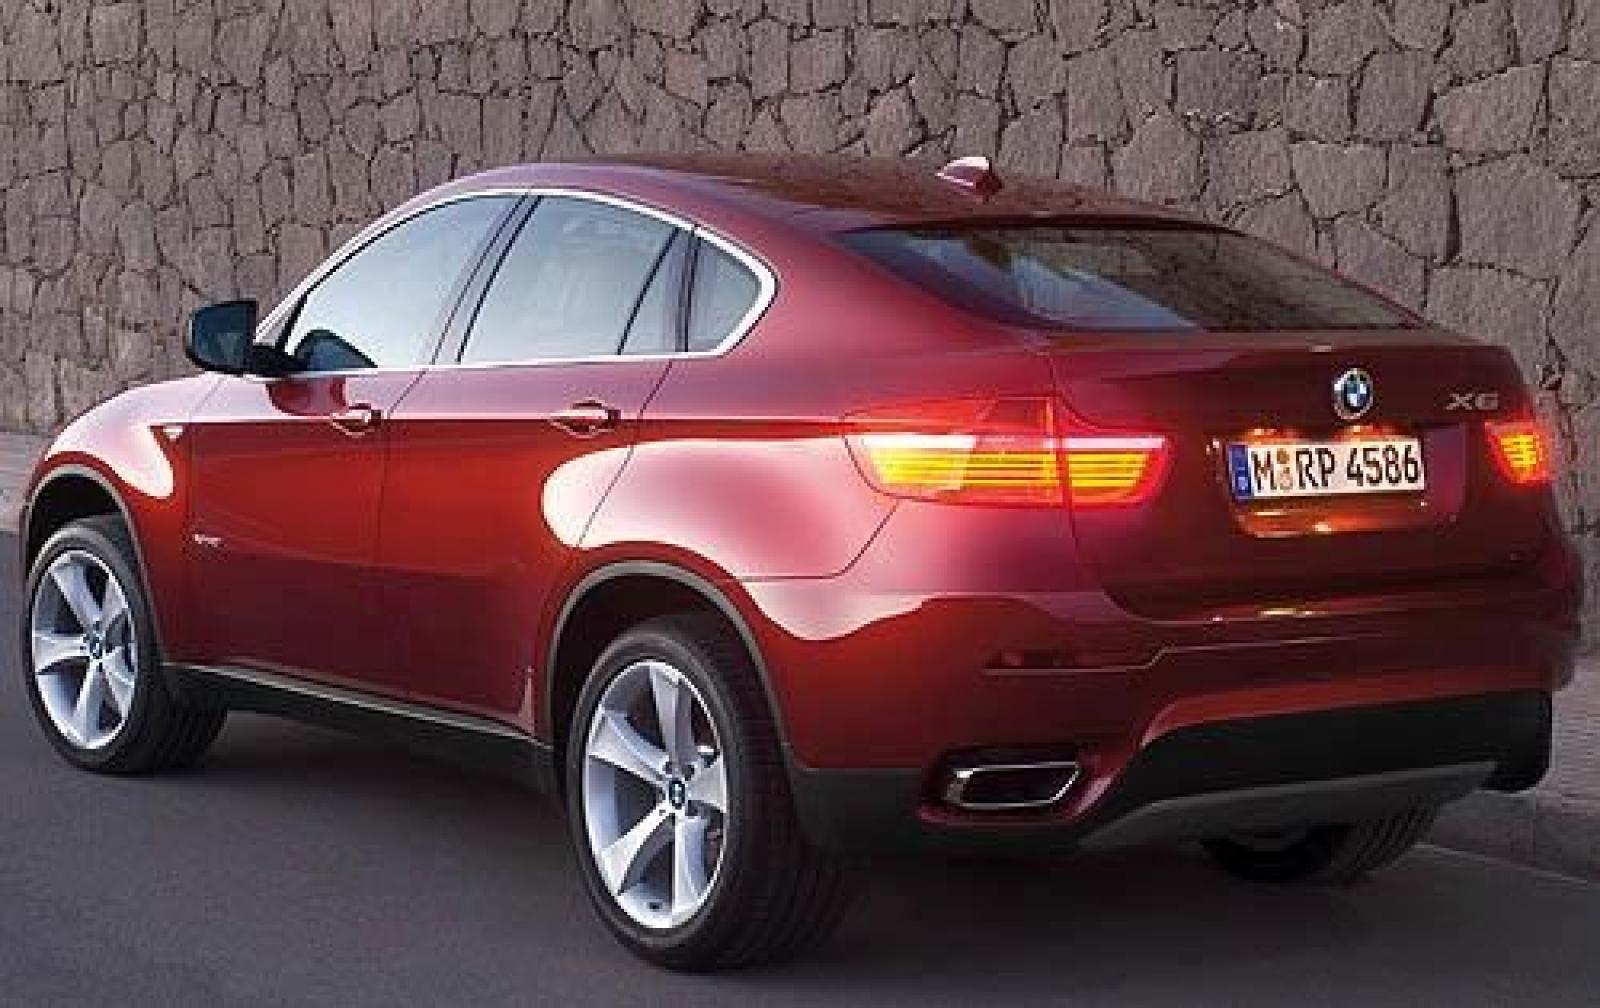 2010 Bmw X6 Information And Photos Zomb Drive